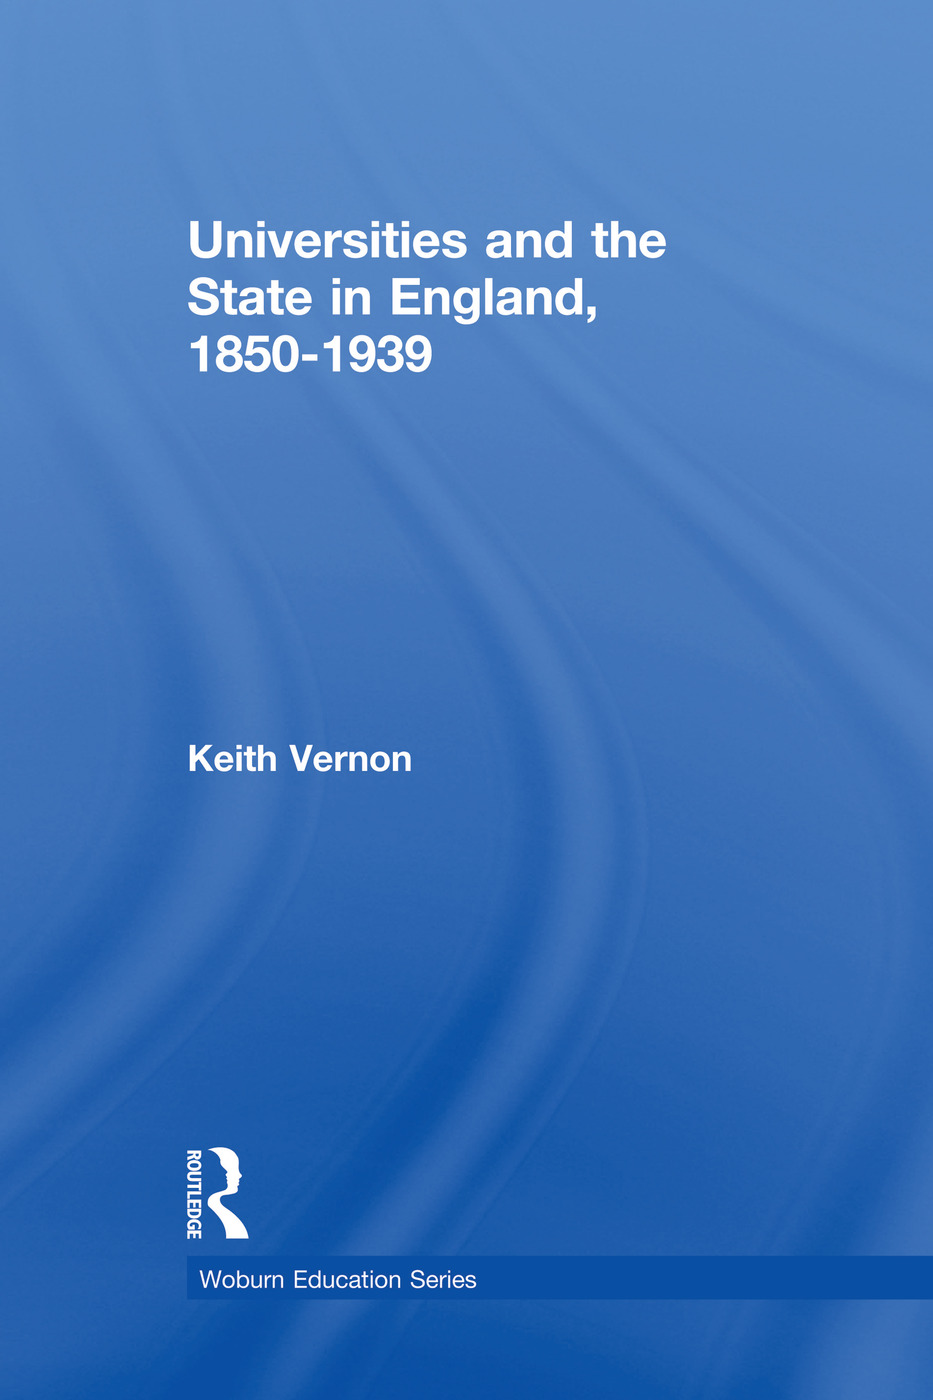 Universities and the State in England, 1850-1939 book cover